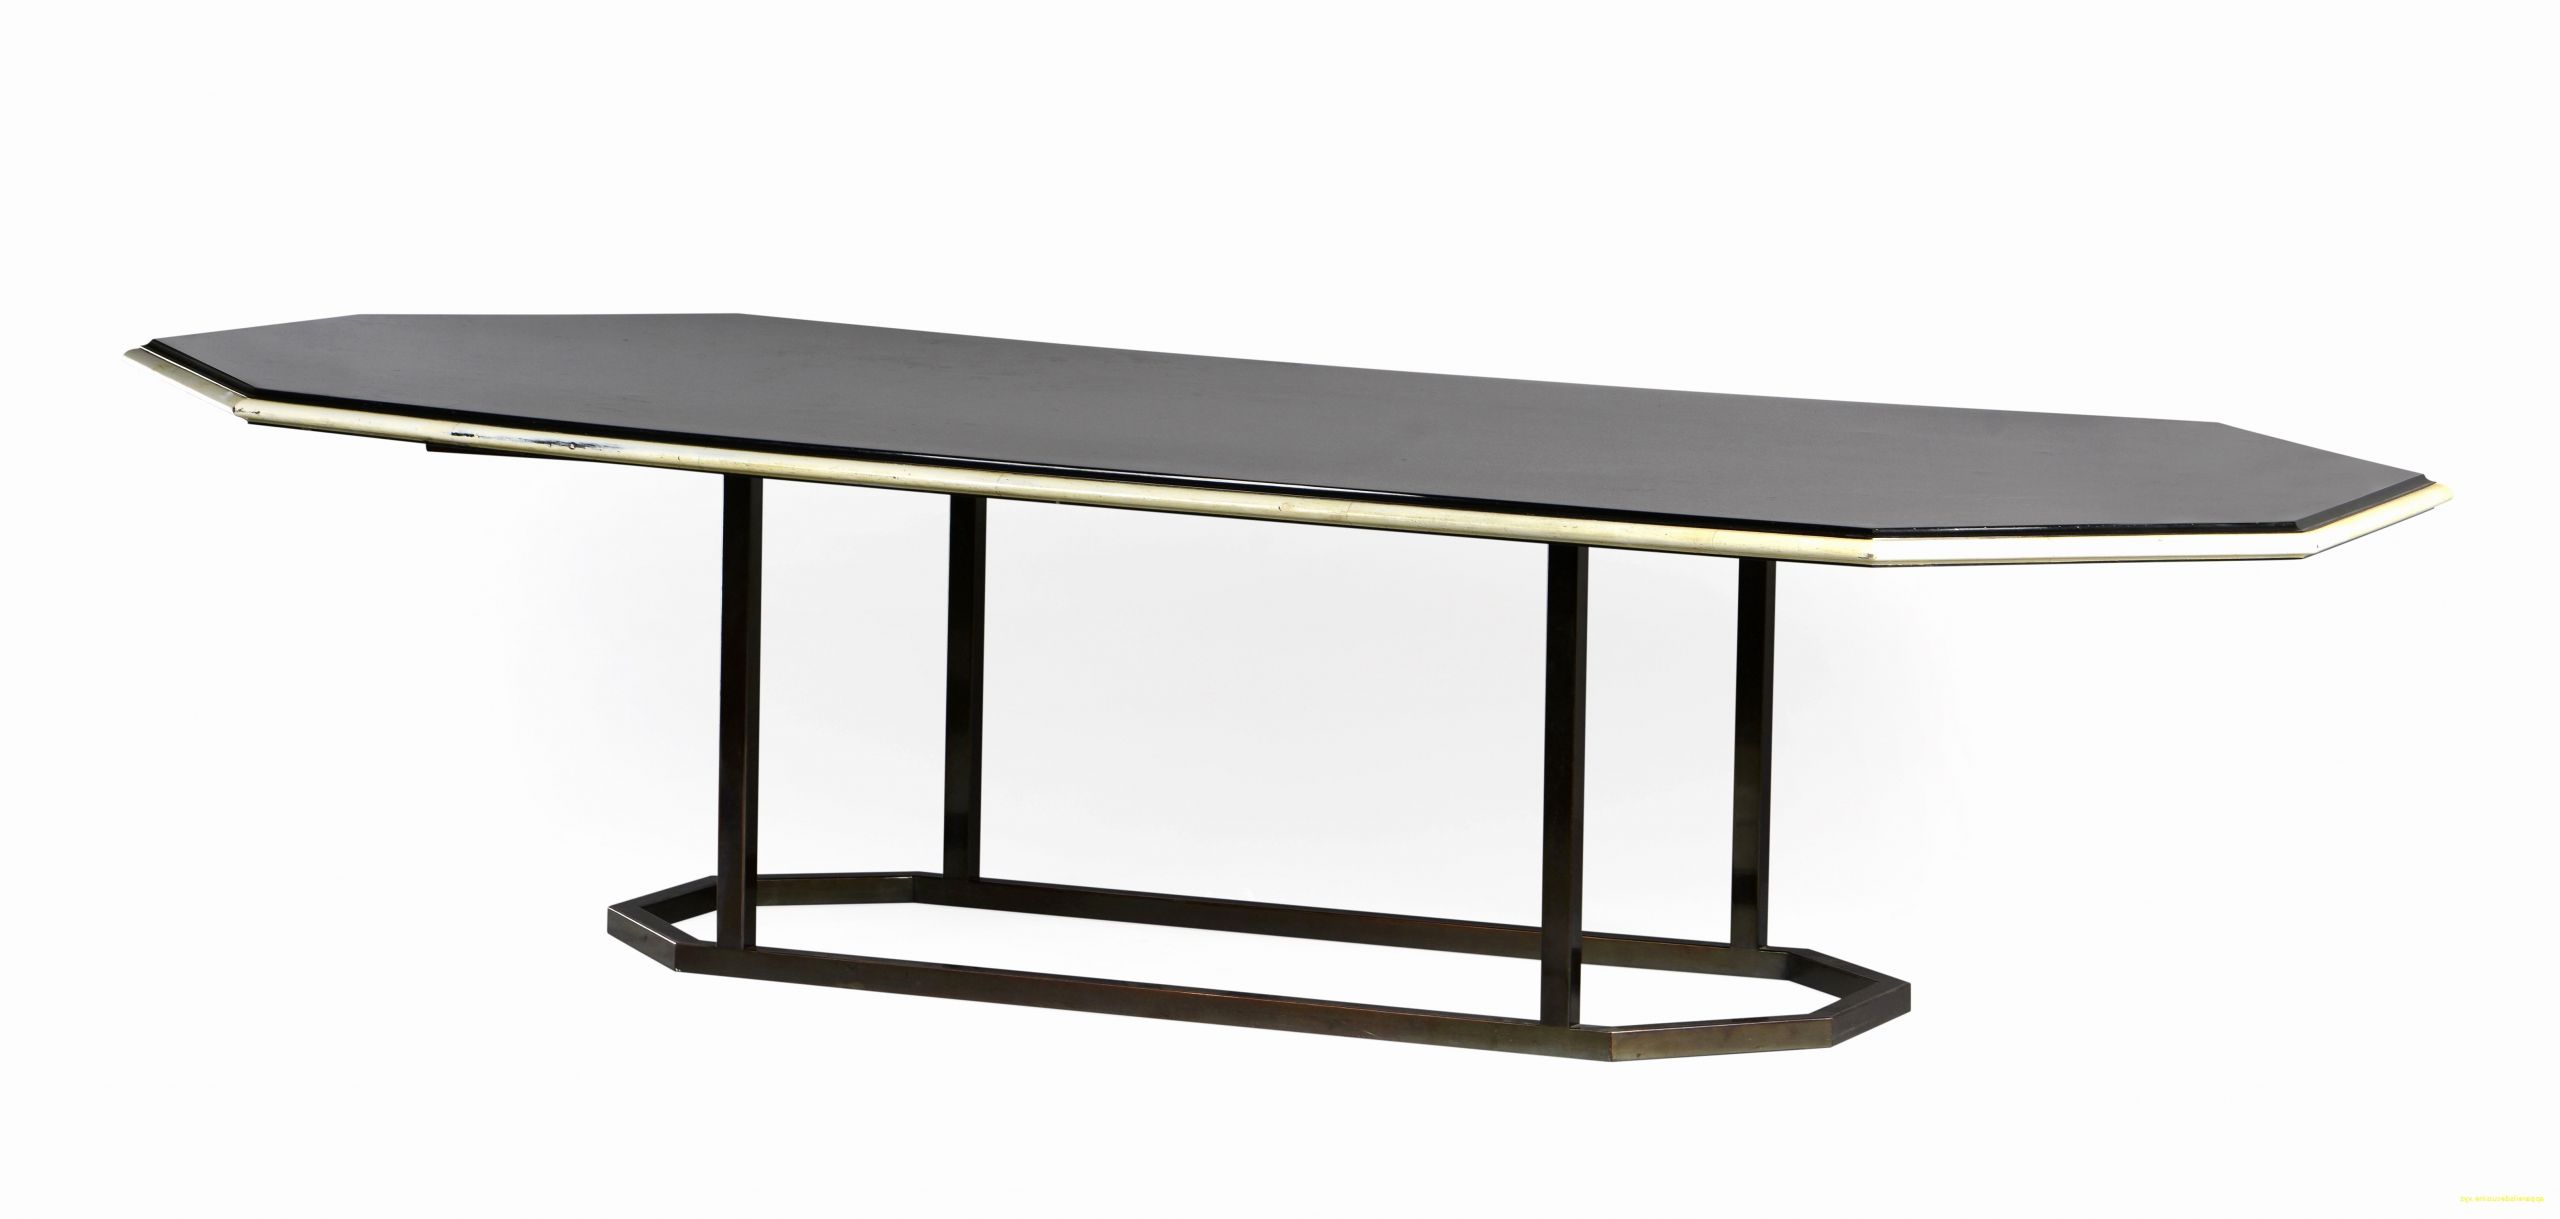 table a repasser i nouveau luxe housse table repasser i beau s accueil festinablog of table a repasser i